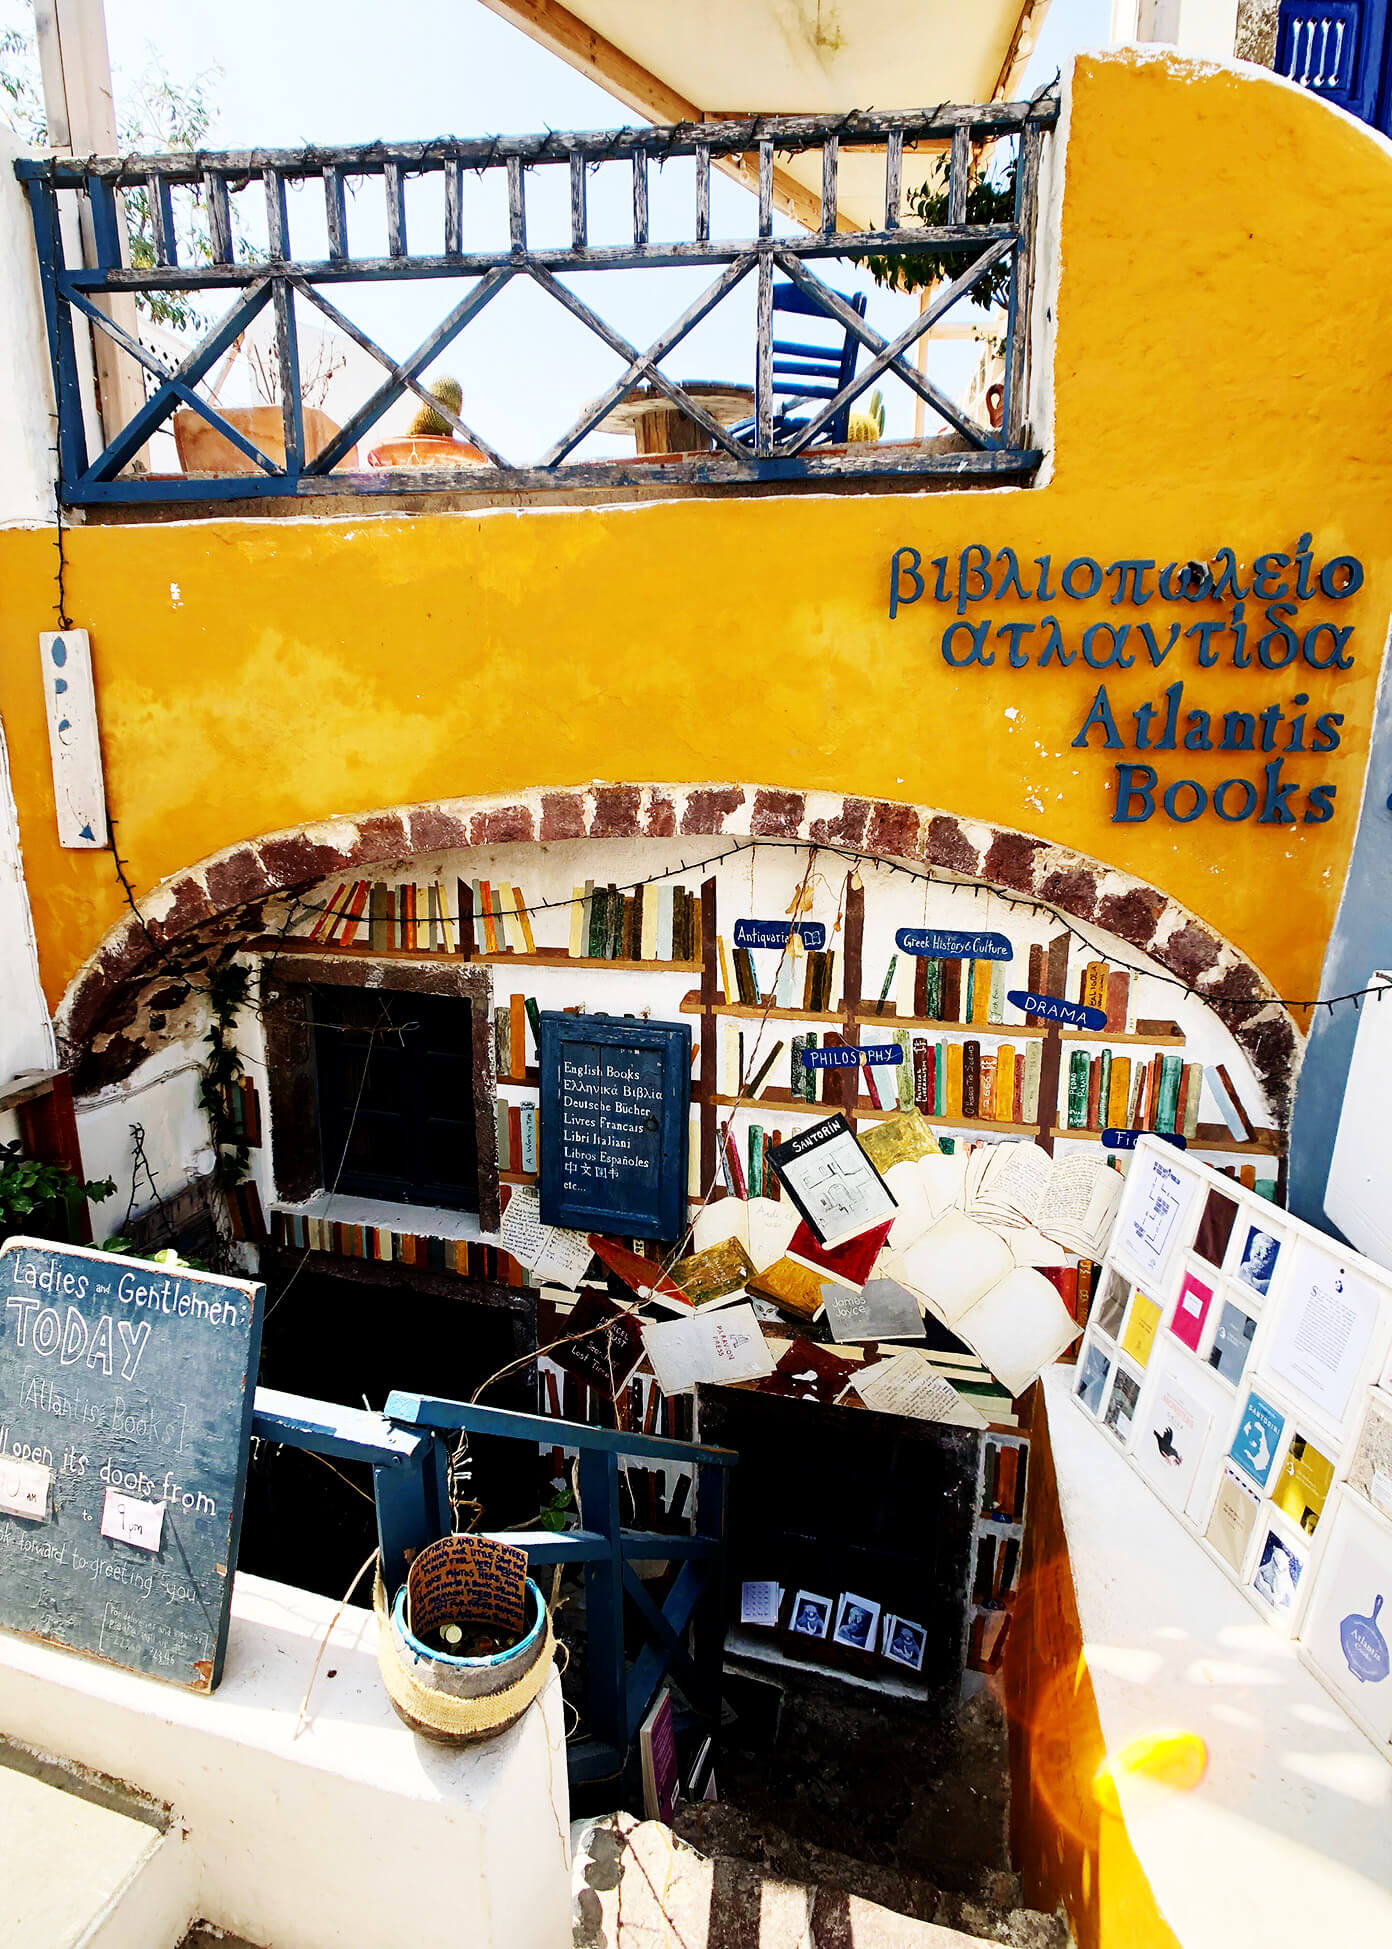 Atlantis Books in Oia Santorini Greece